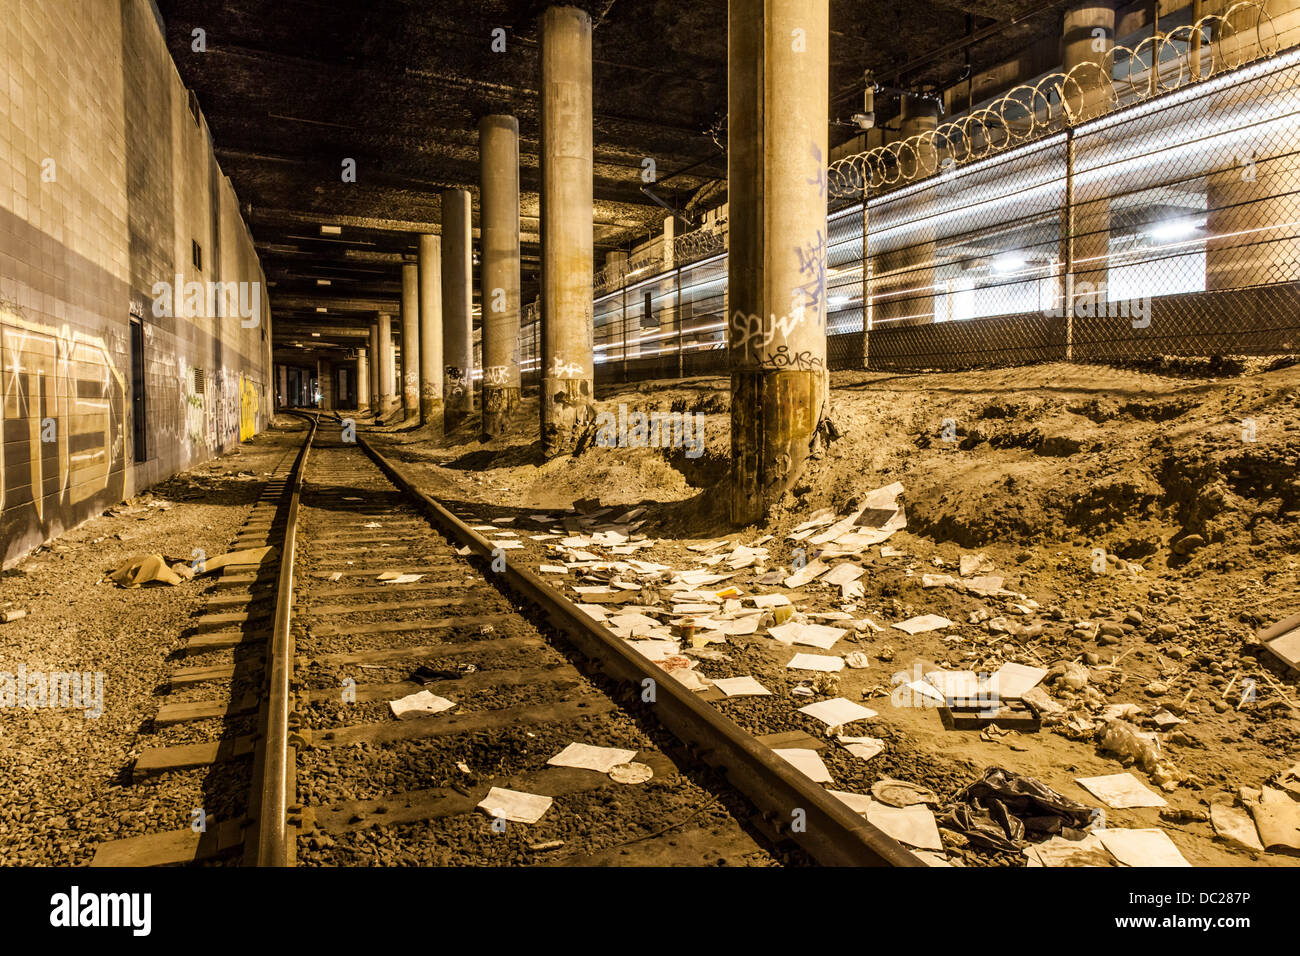 Train tunner near the Waterfront Skytrain Station in Vancouver, British Colombia, Canada. - Stock Image